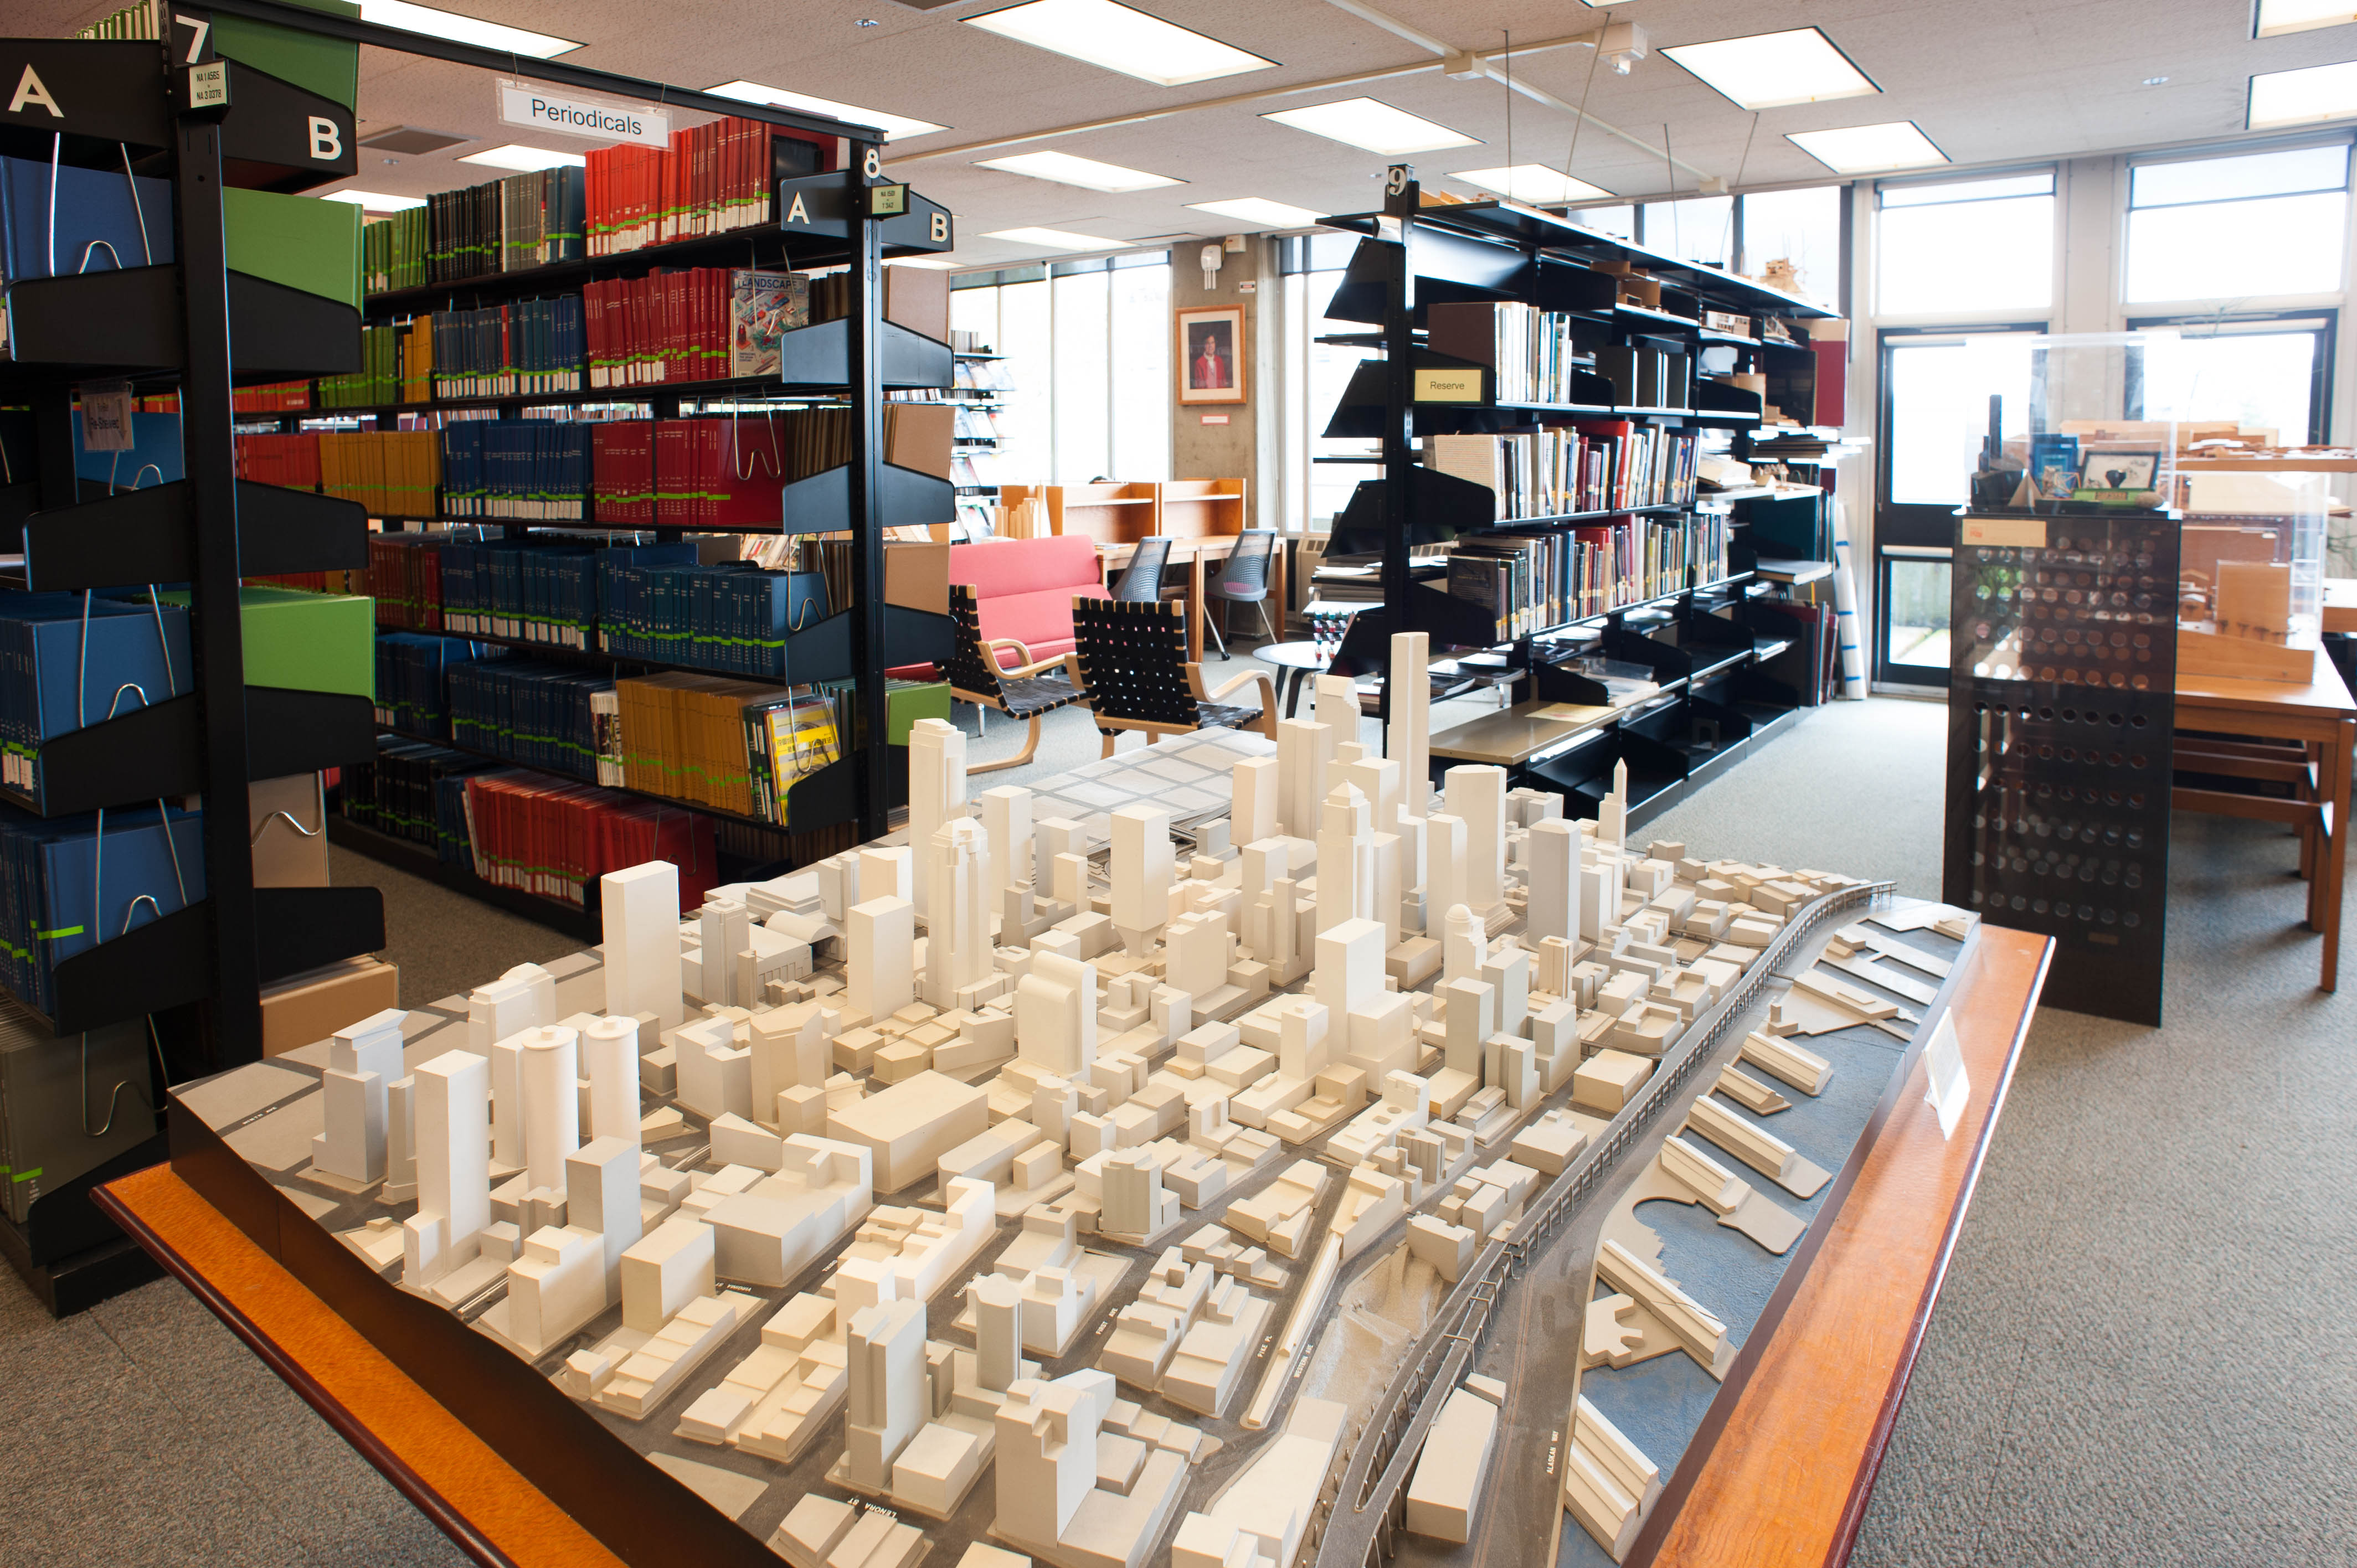 A model of downtown Seattle in the Built Environments Library.